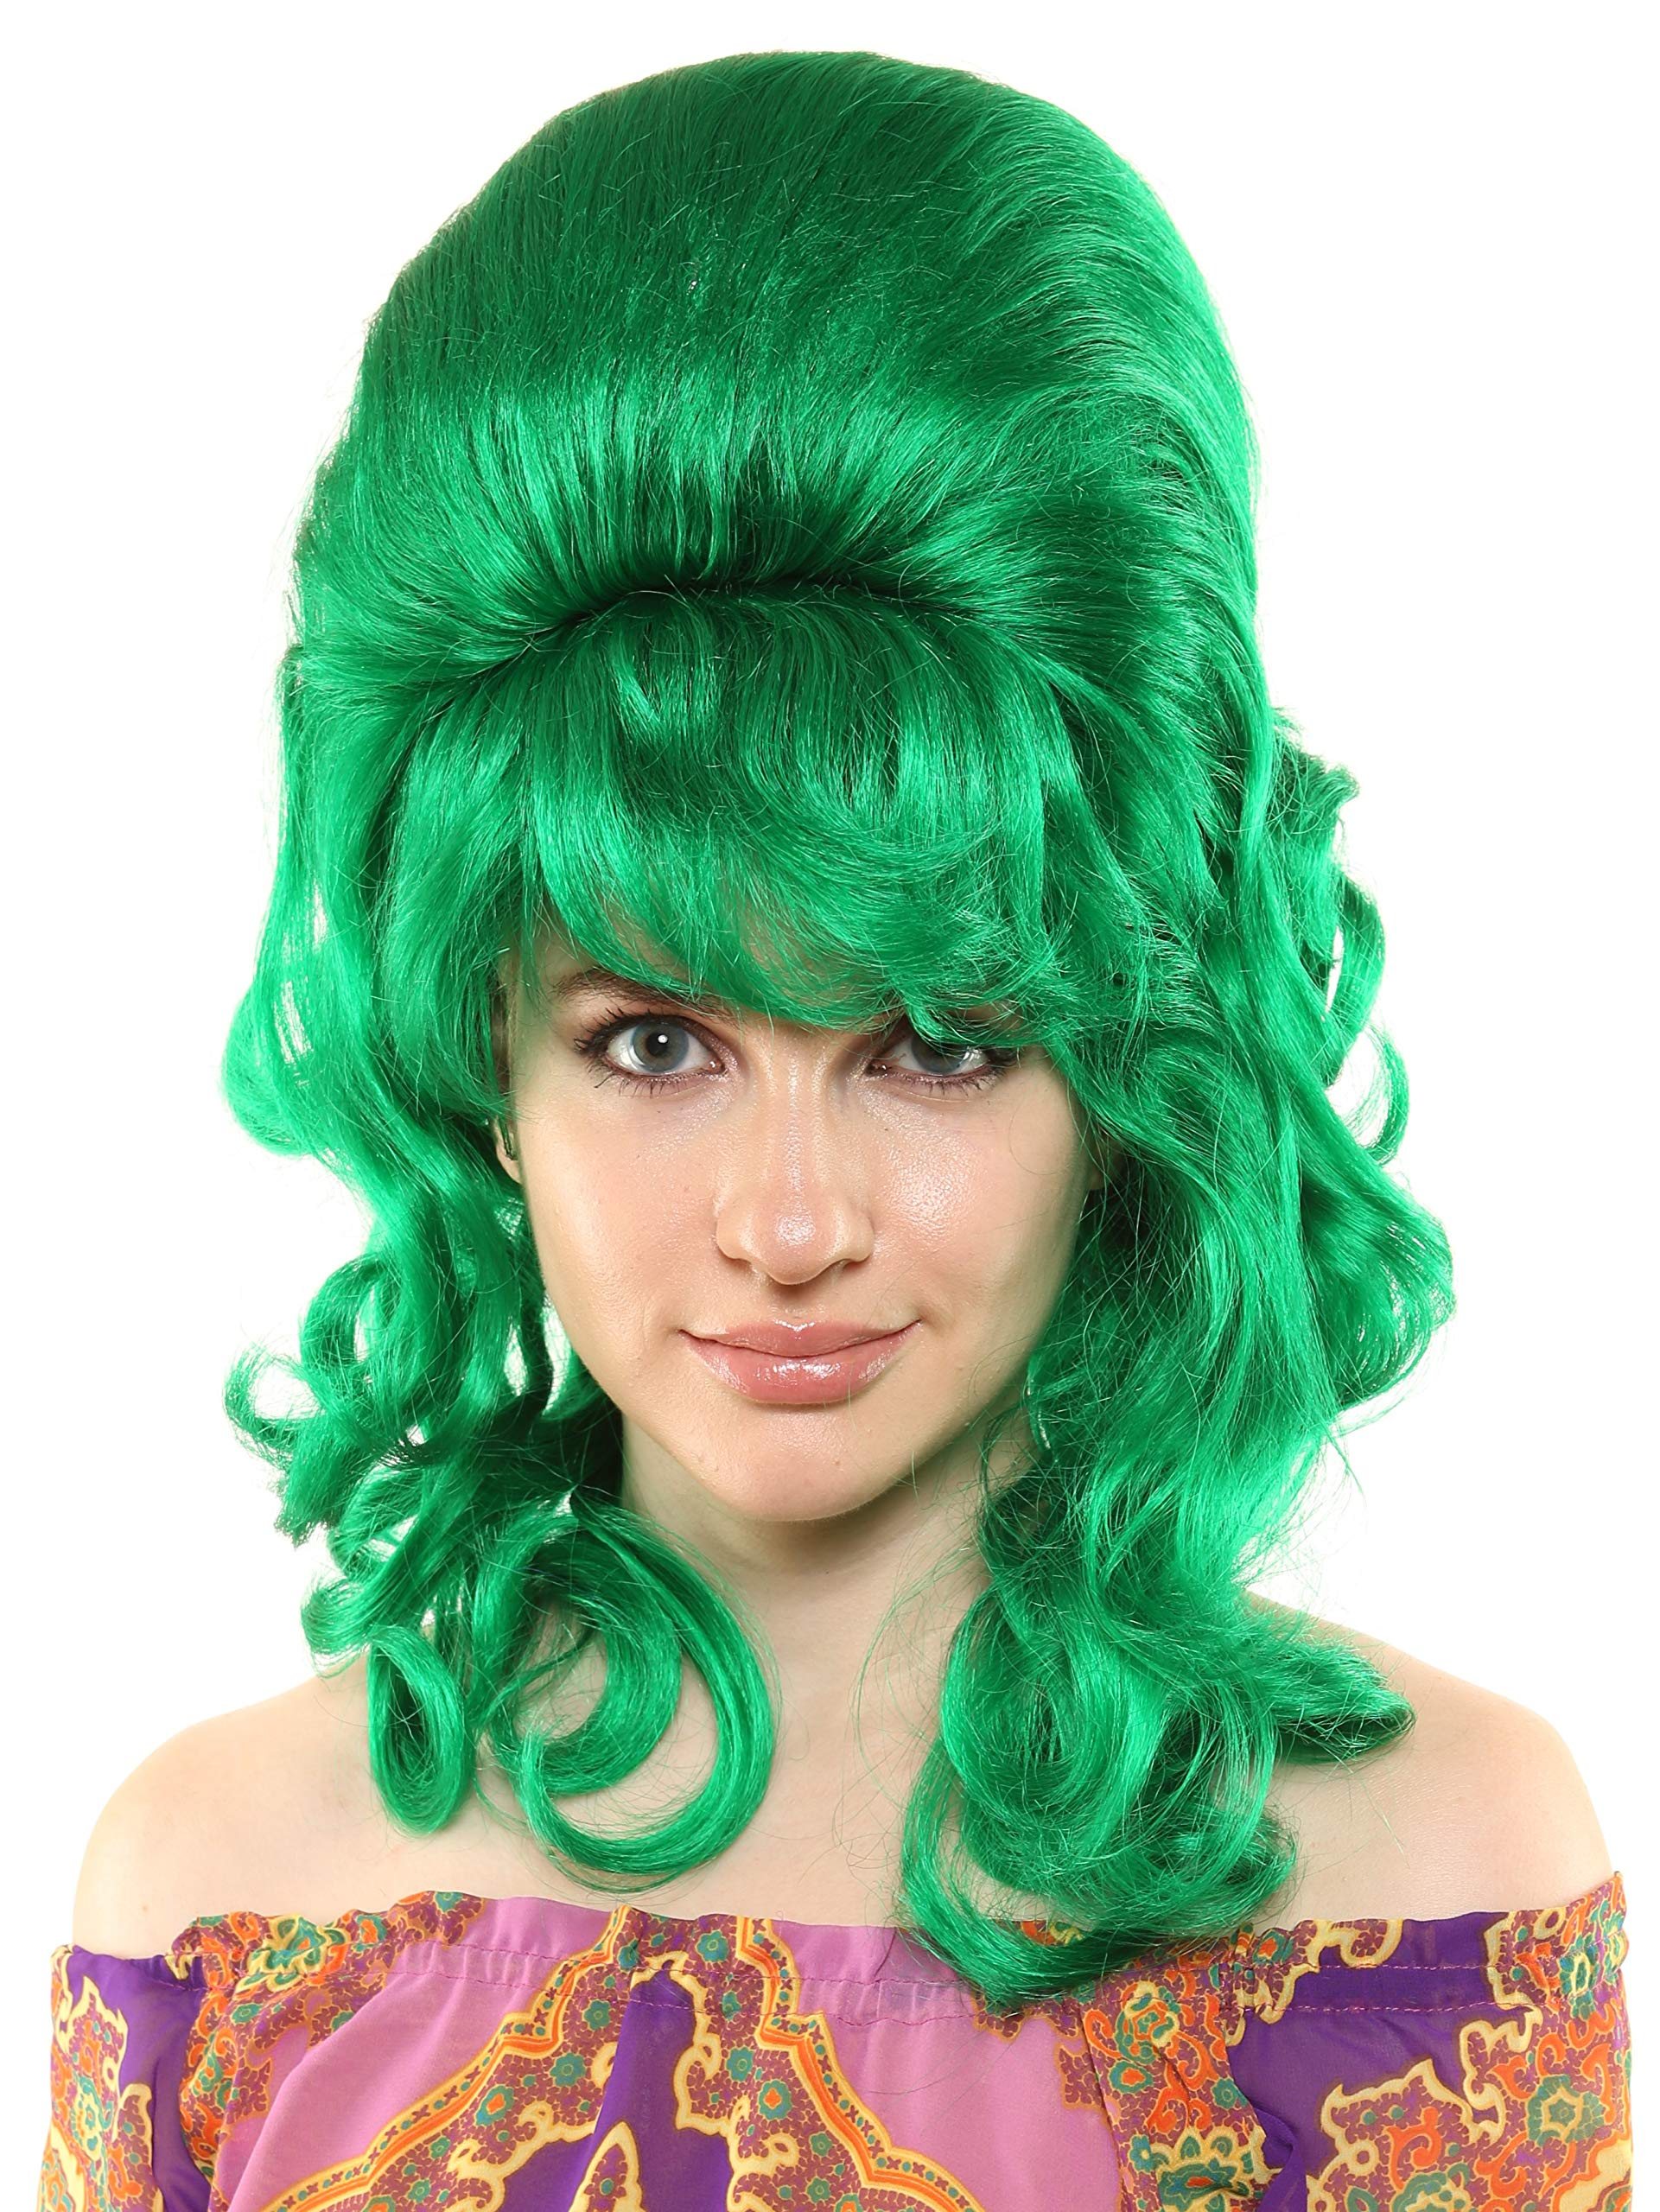 Premium Quality 1960's Beehive Wig with Natural Curls (Emerald) by LuxeWigs